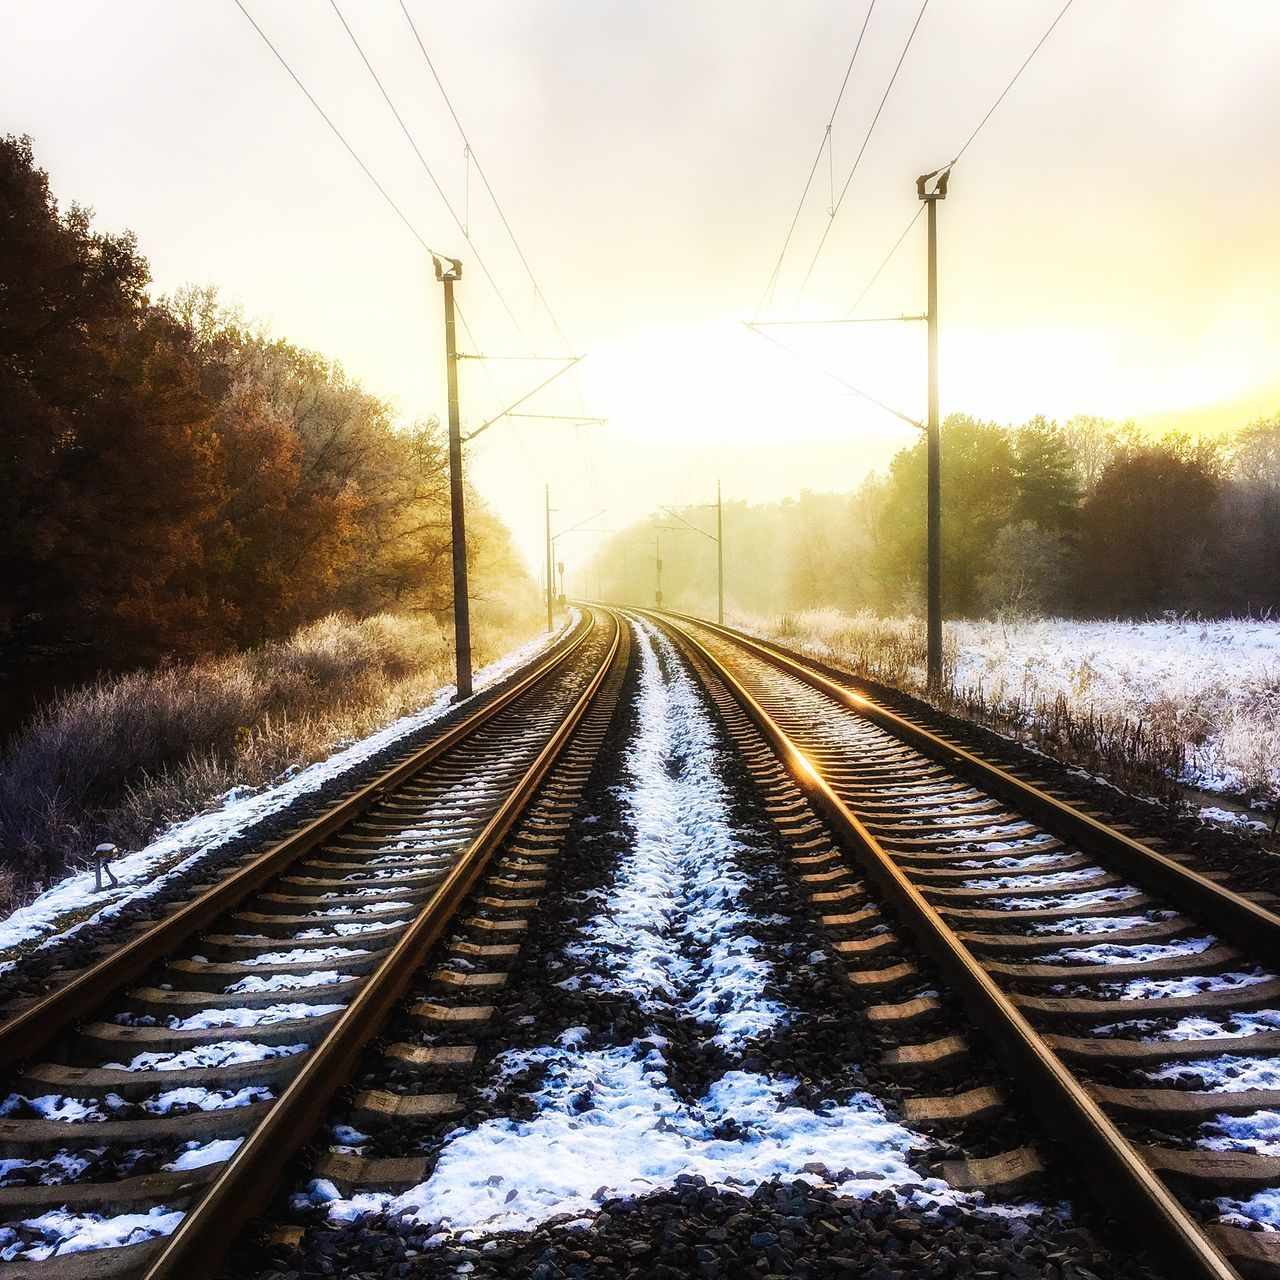 railroad track, winter, cold temperature, snow, rail transportation, transportation, weather, cable, diminishing perspective, nature, no people, the way forward, power line, tree, sunset, electricity pylon, sky, outdoors, electricity, day, beauty in nature